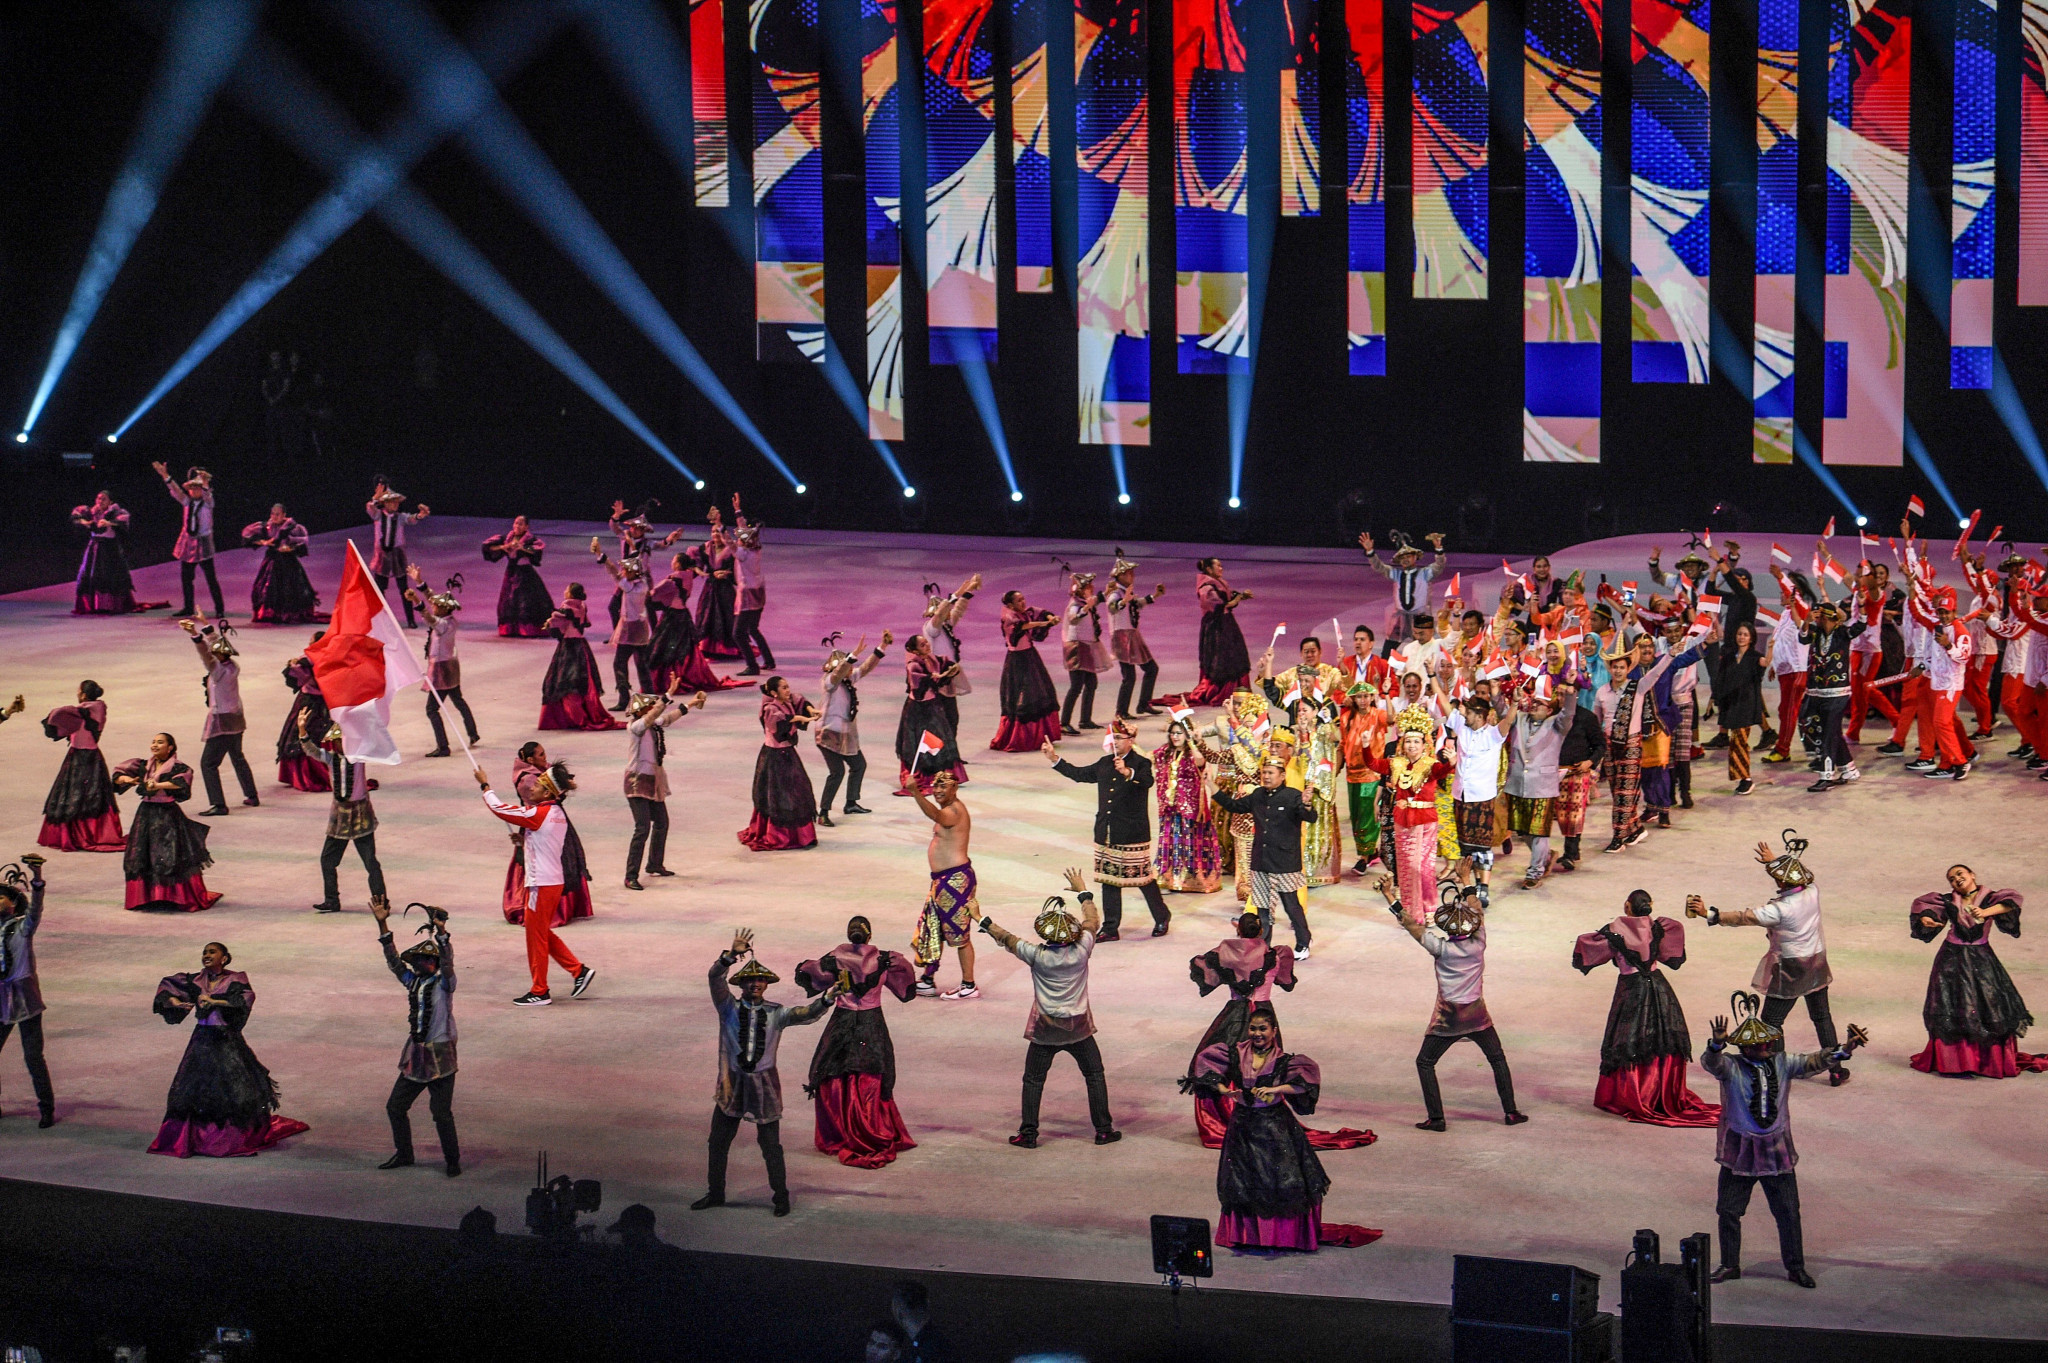 Cultural performances took place during the Opening Ceremony ©Getty Images